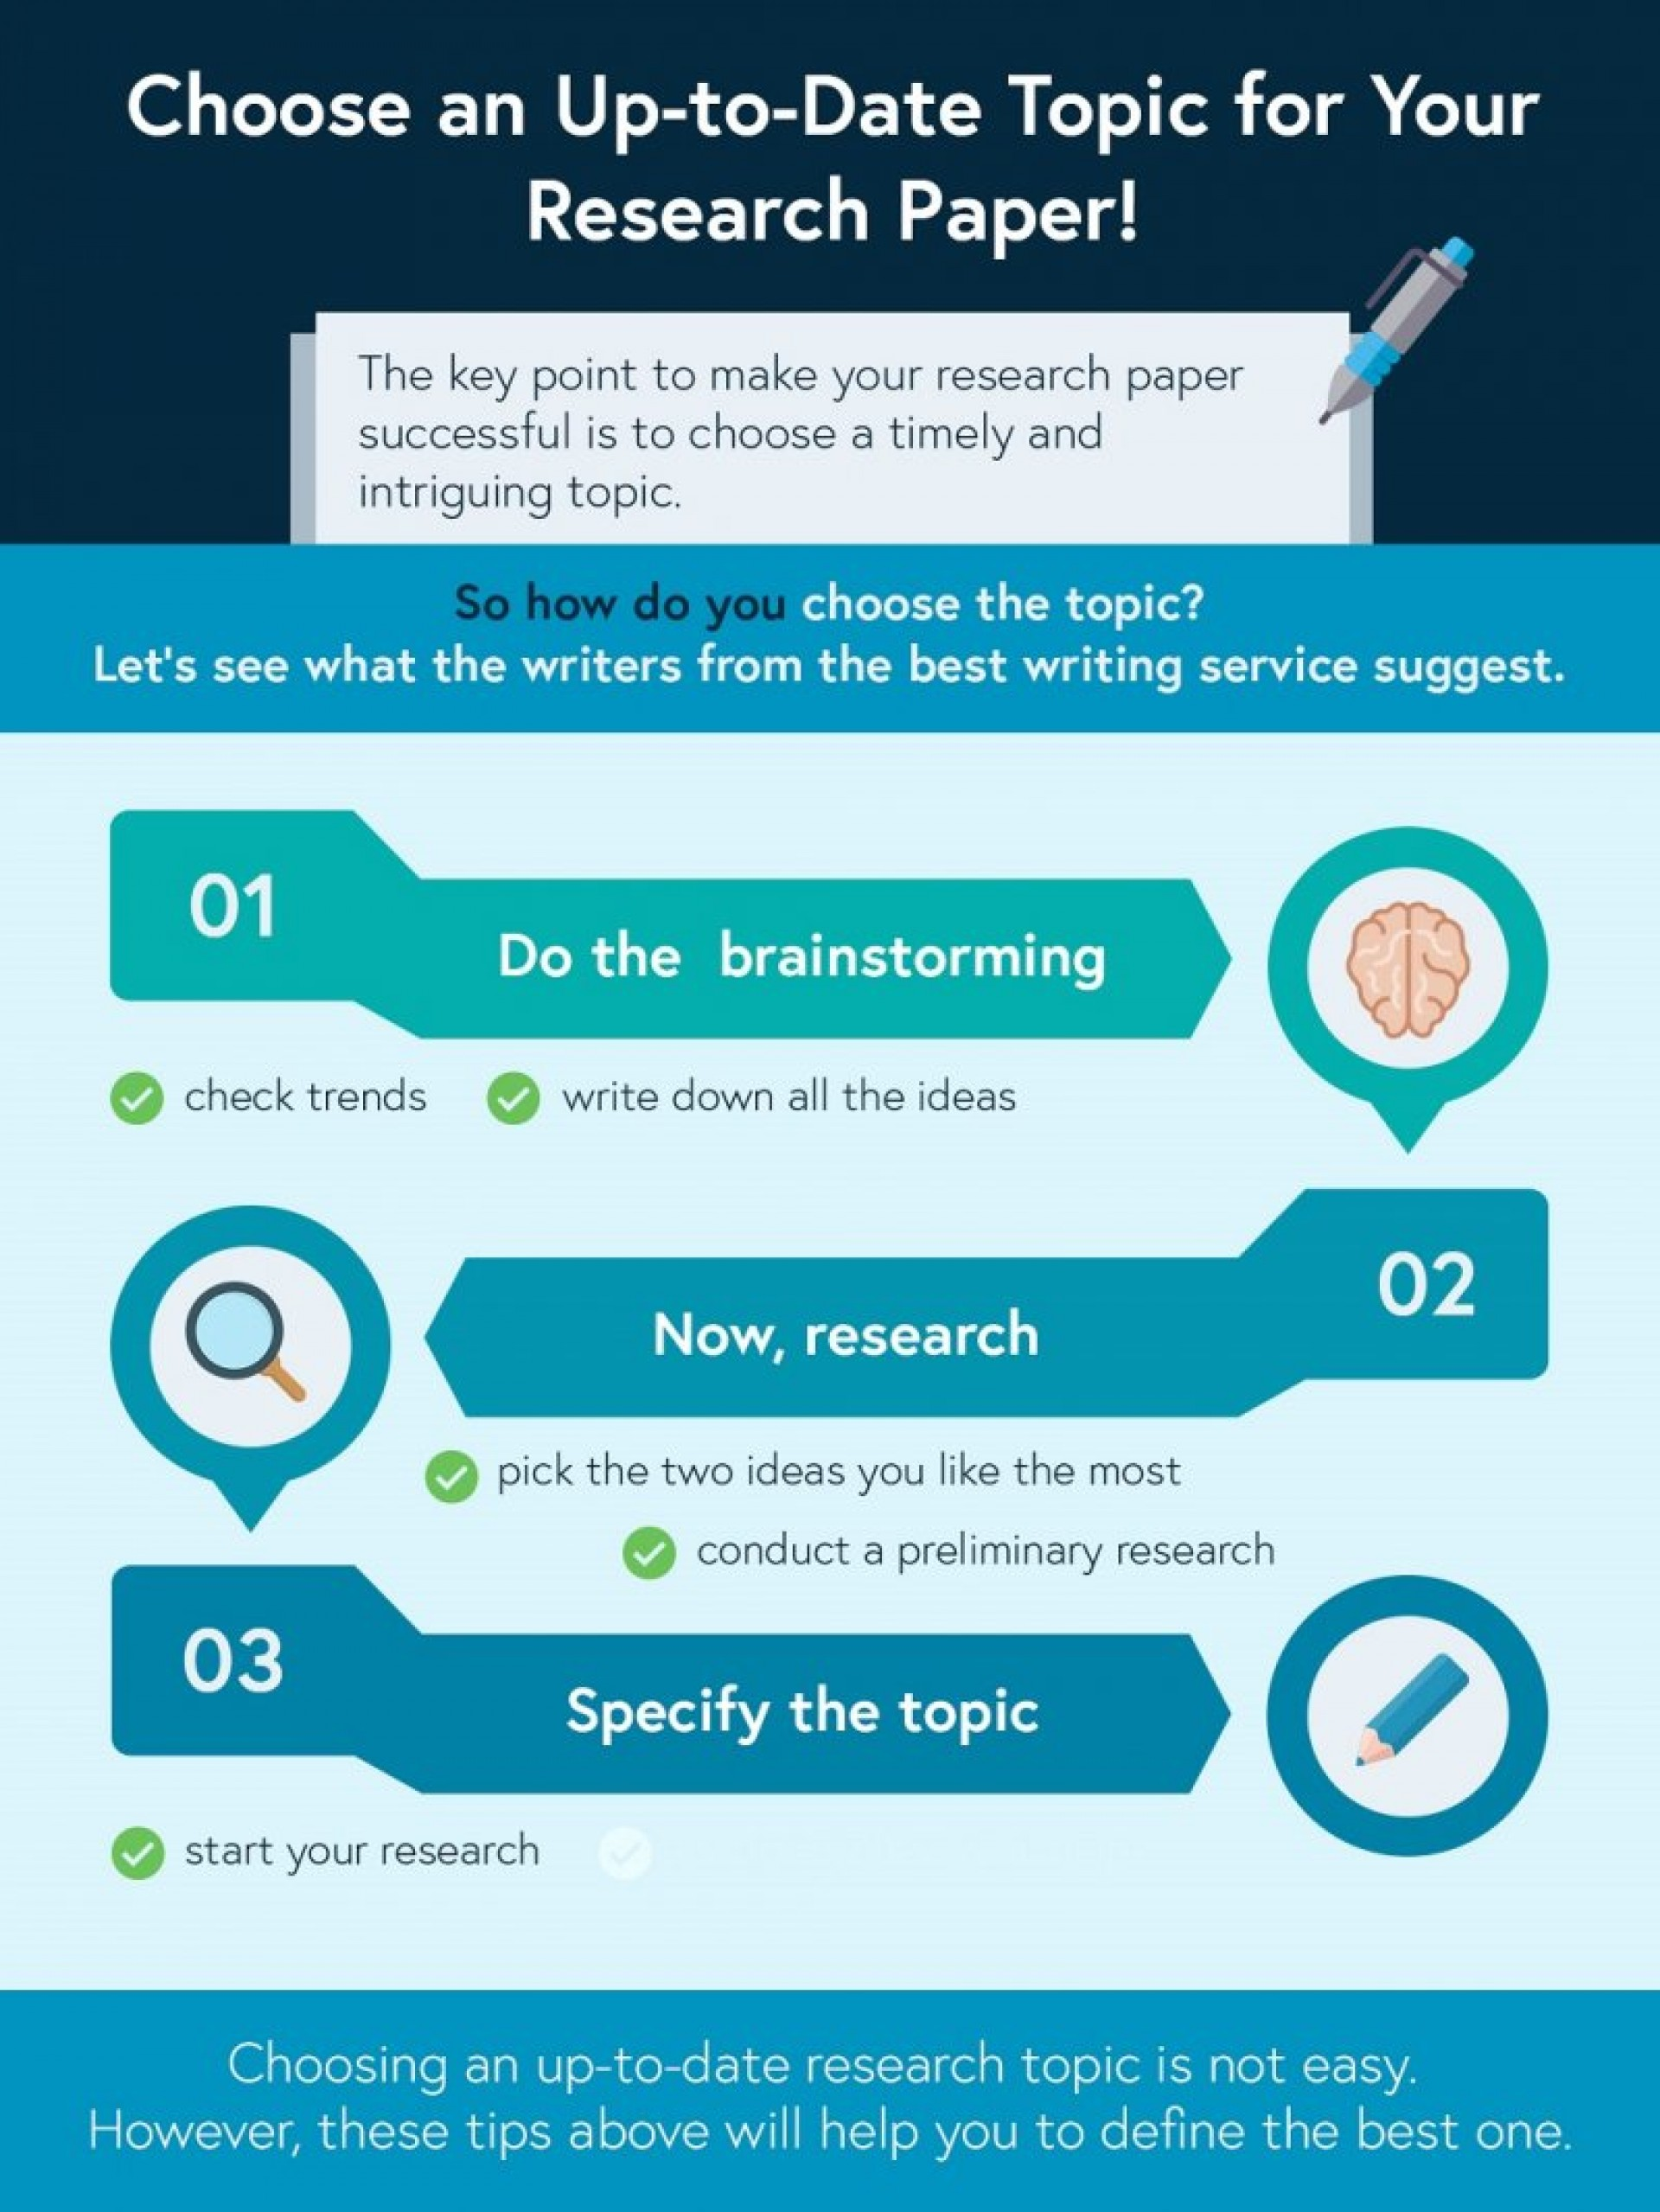 006 Research Paper Infographic Writing Dreaded Service Services In India Best Academic Online 1920